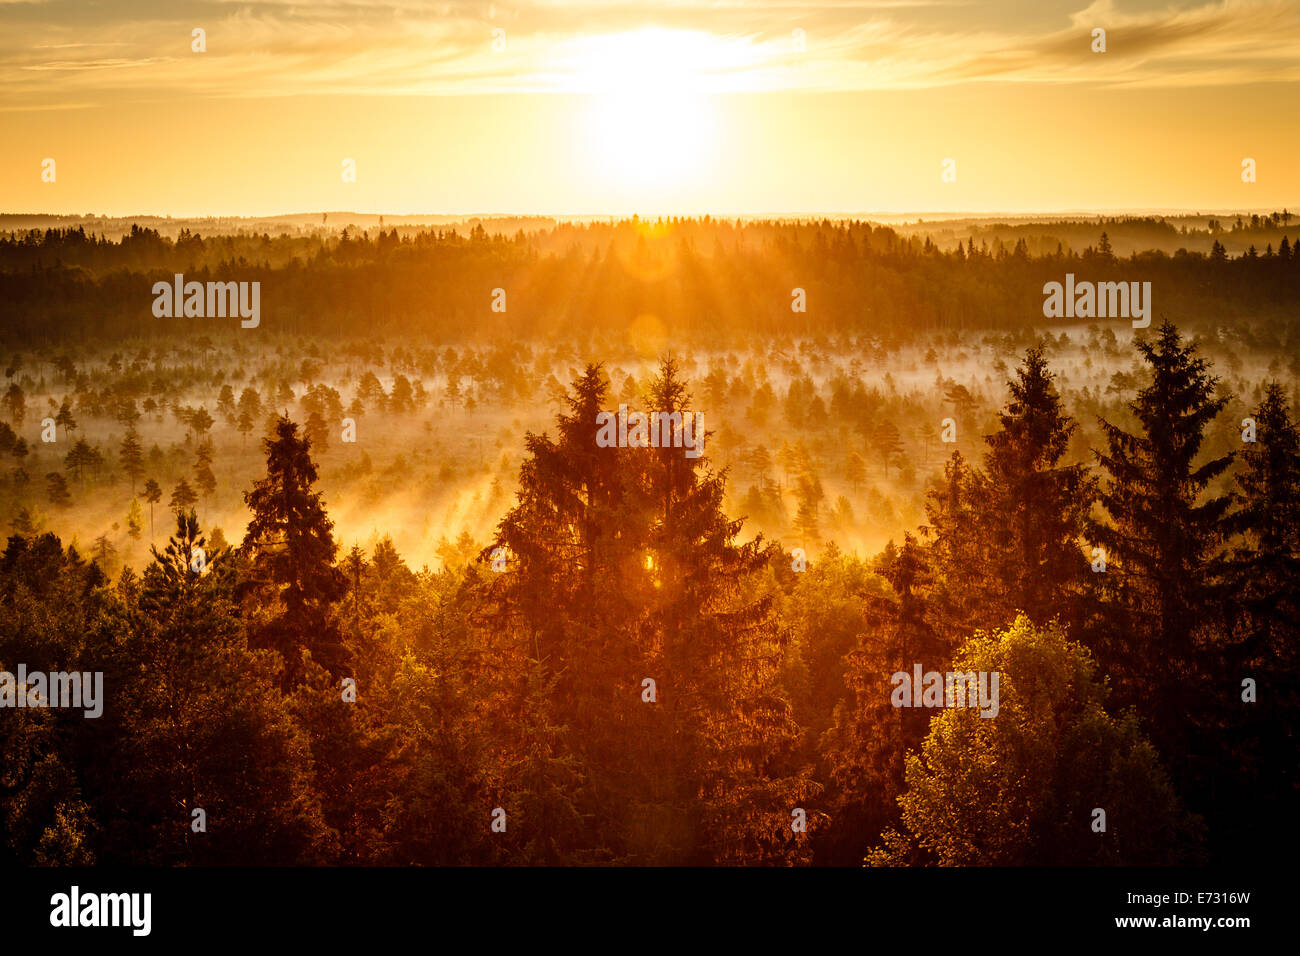 Sun rising on an early morning at the Torronsuo Swamp in Finland. The sun shining bright at the golden hour. - Stock Image